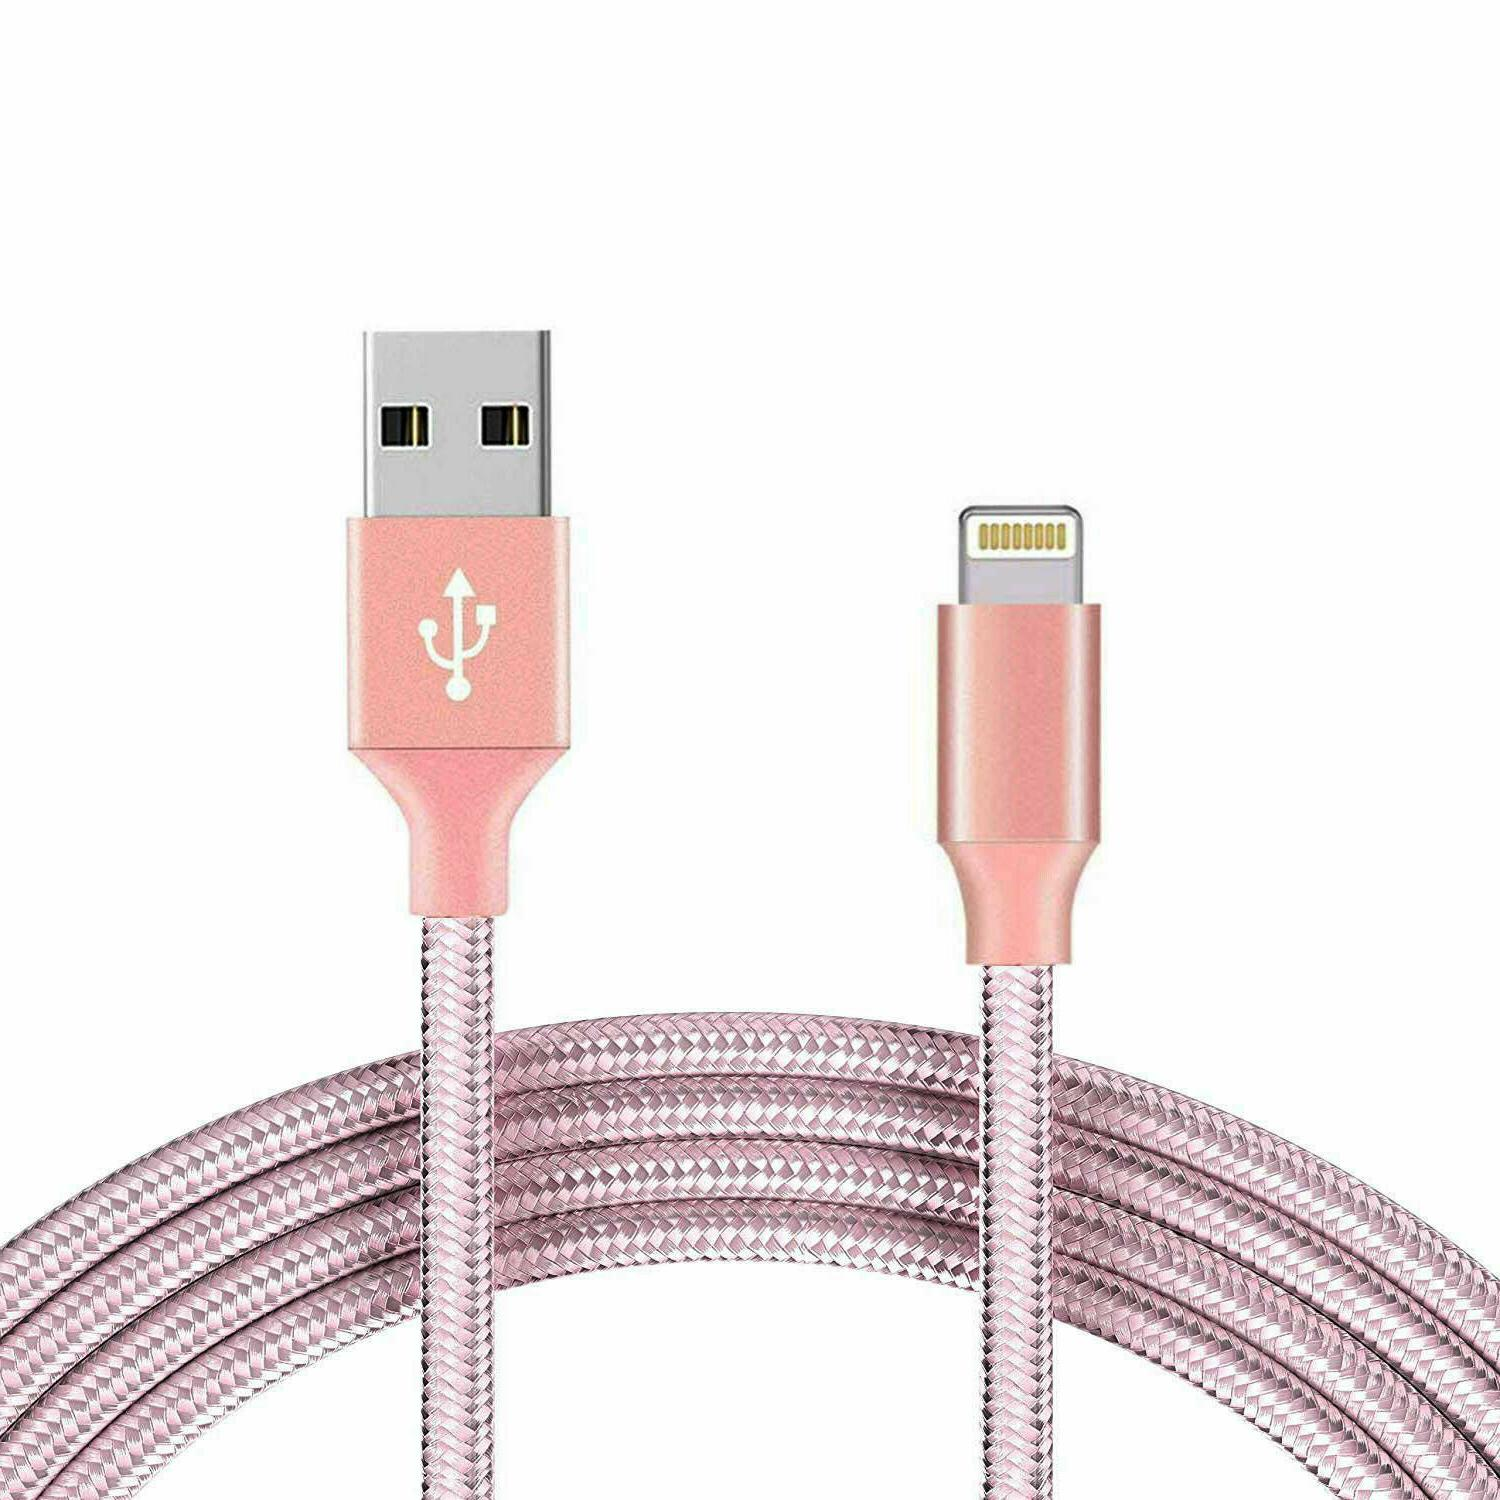 Braided USB Charger Cable 7 8 Xs 3ft 10ft